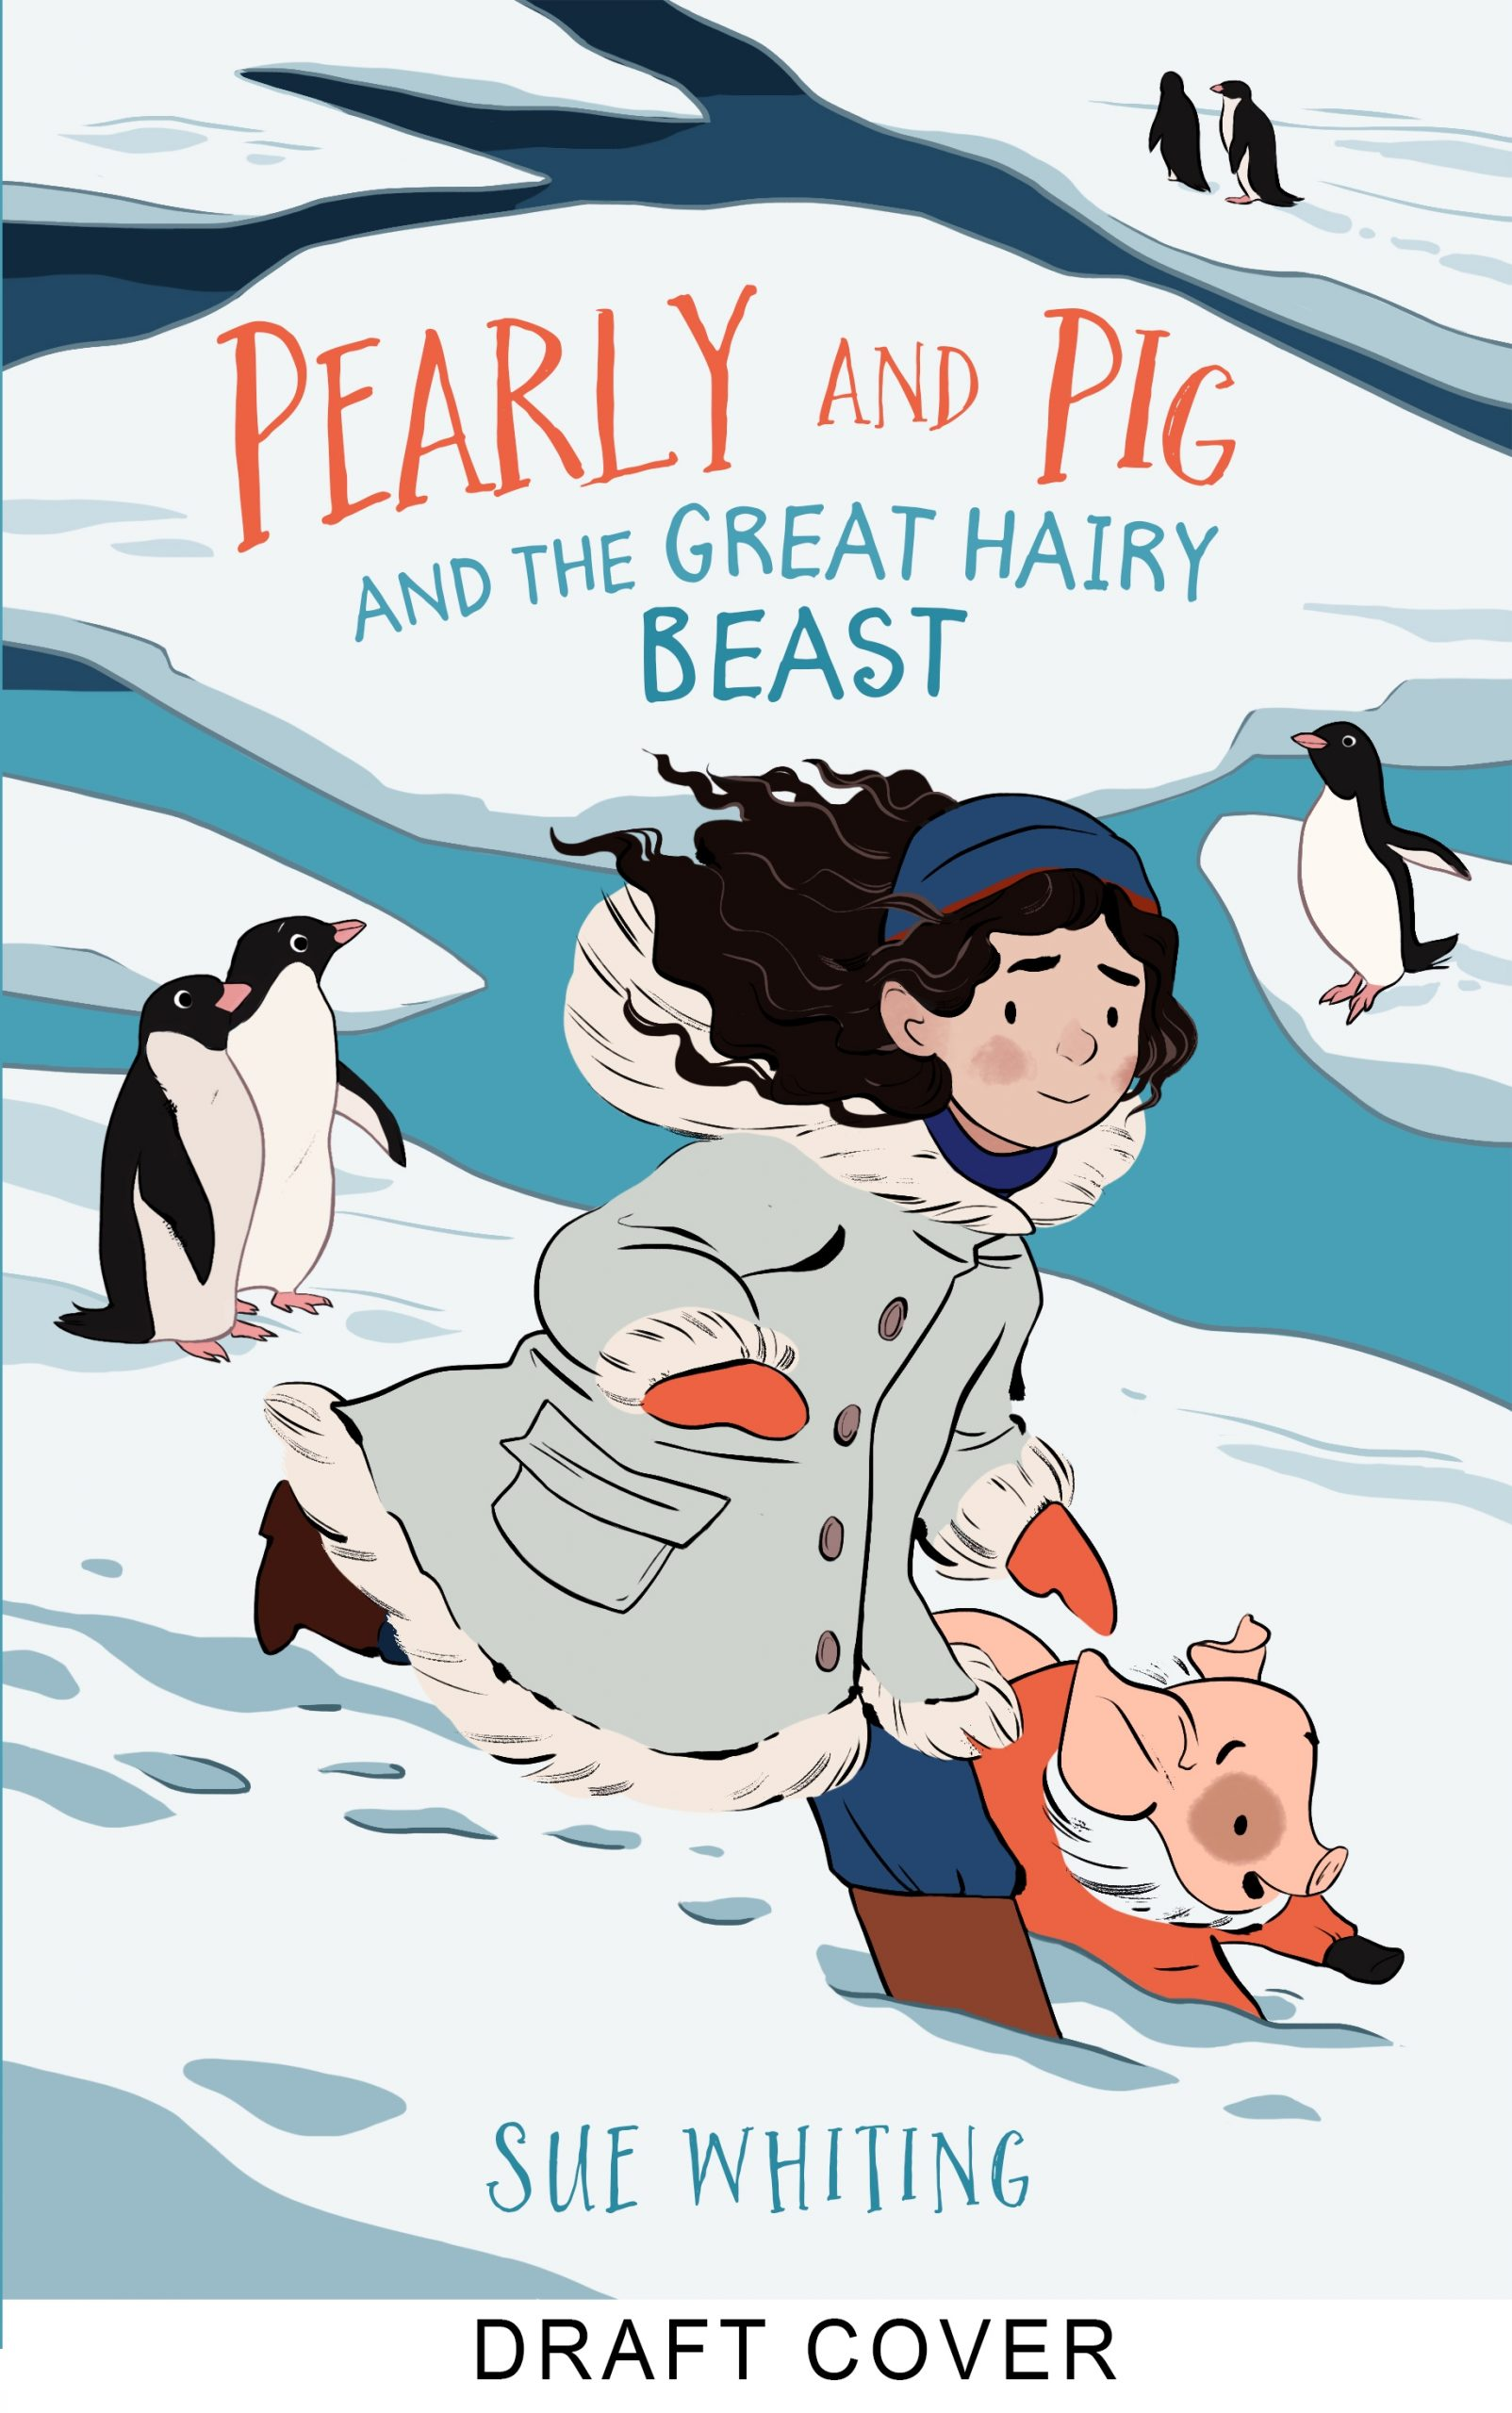 Pearly and Pig and the Great Hairy Beast